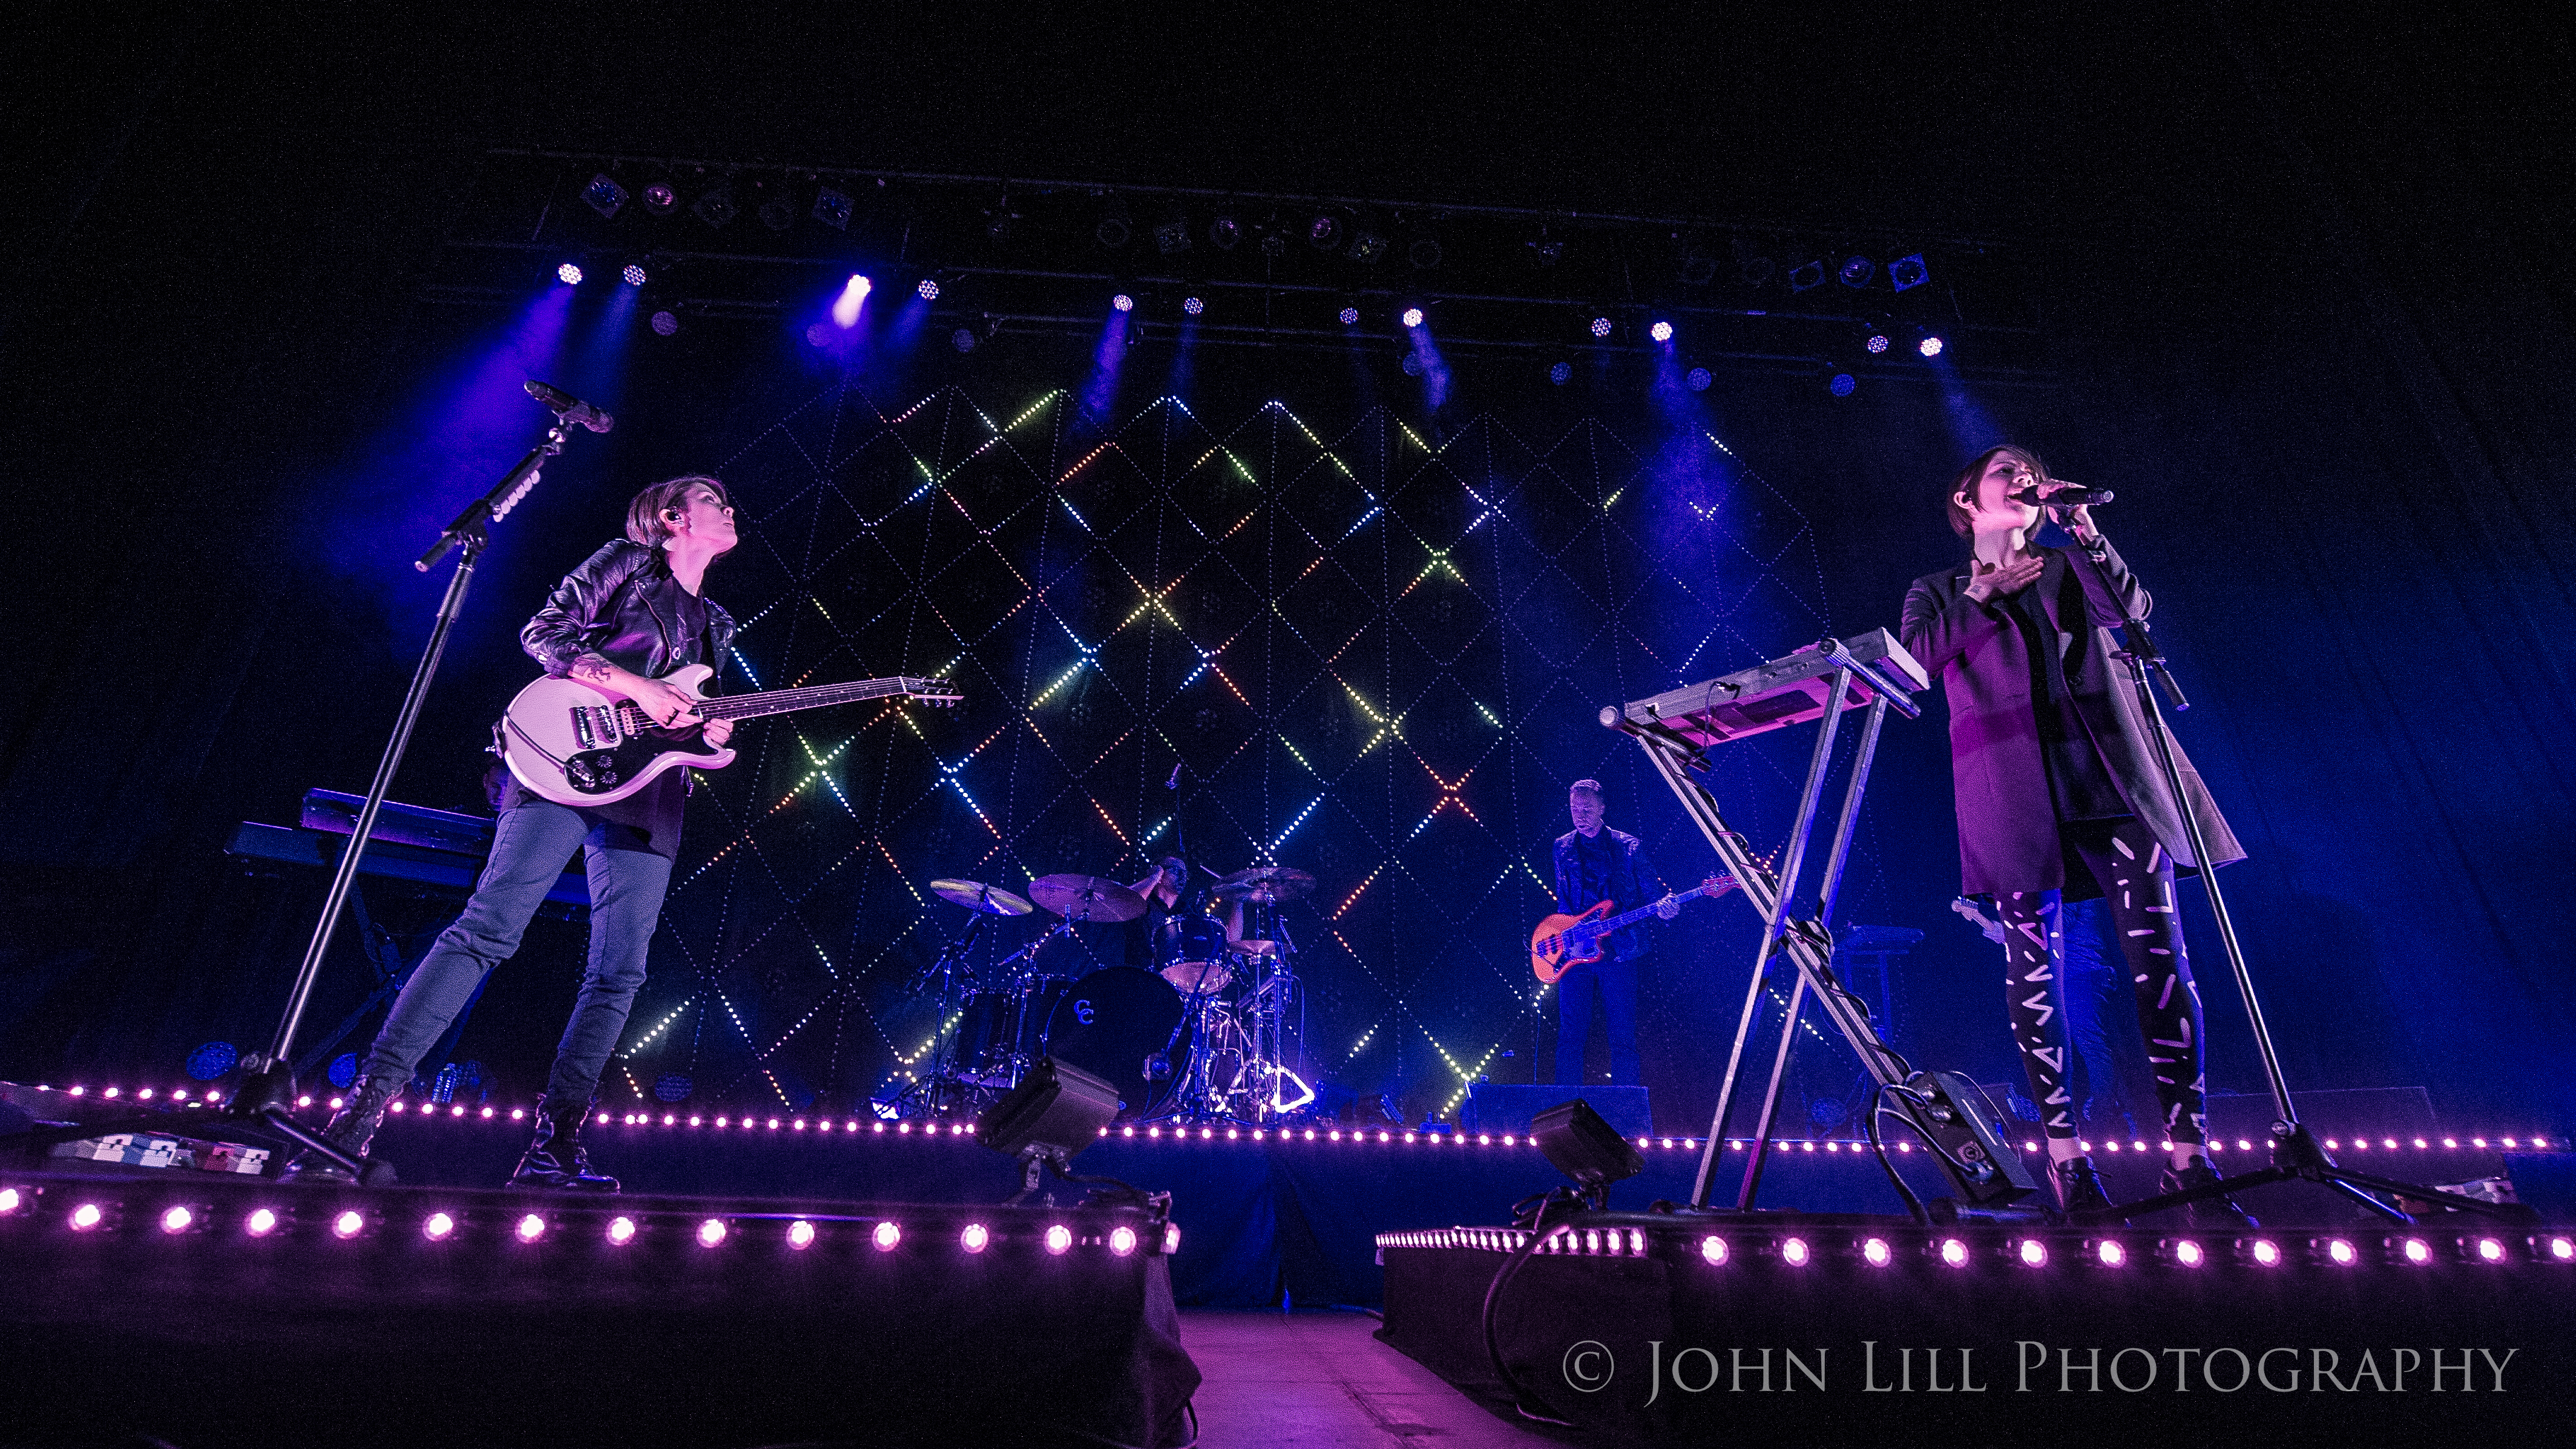 Tegan and Sara perform at the Paramount Theatre in Seattle. Photo by John Lill